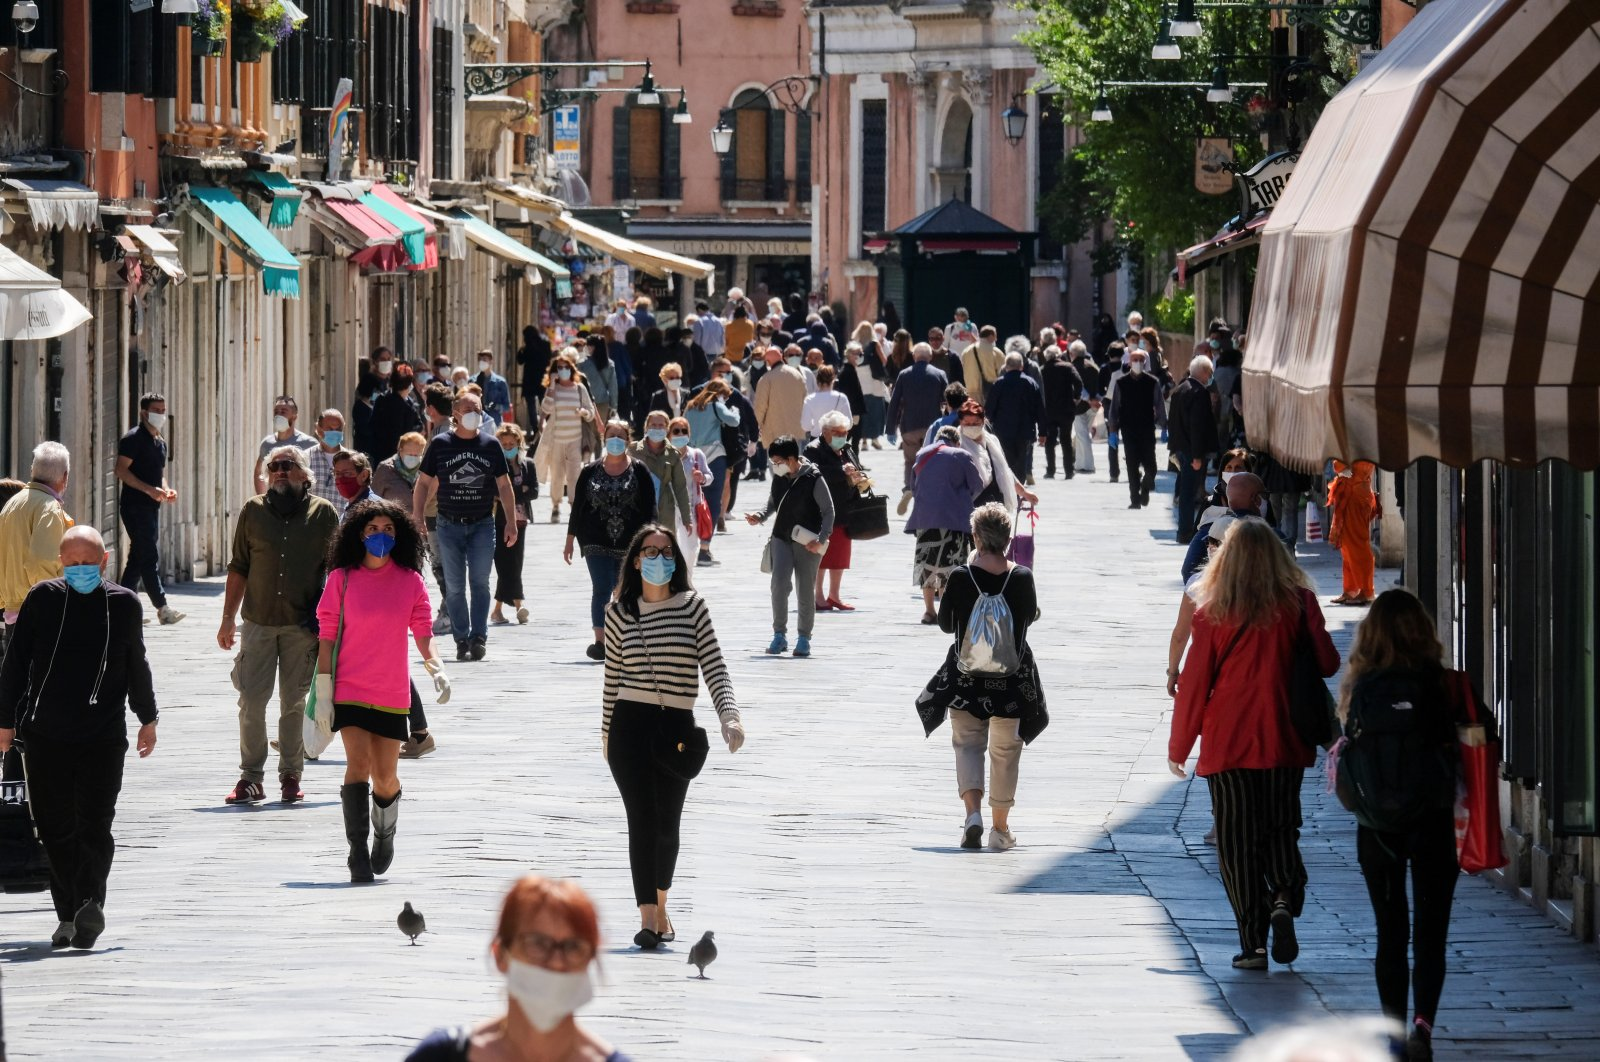 More movement is seen in the streets as coronavirus lockdown measures ease, Venice, Italy, May 4, 2020. (Reuters Photo)